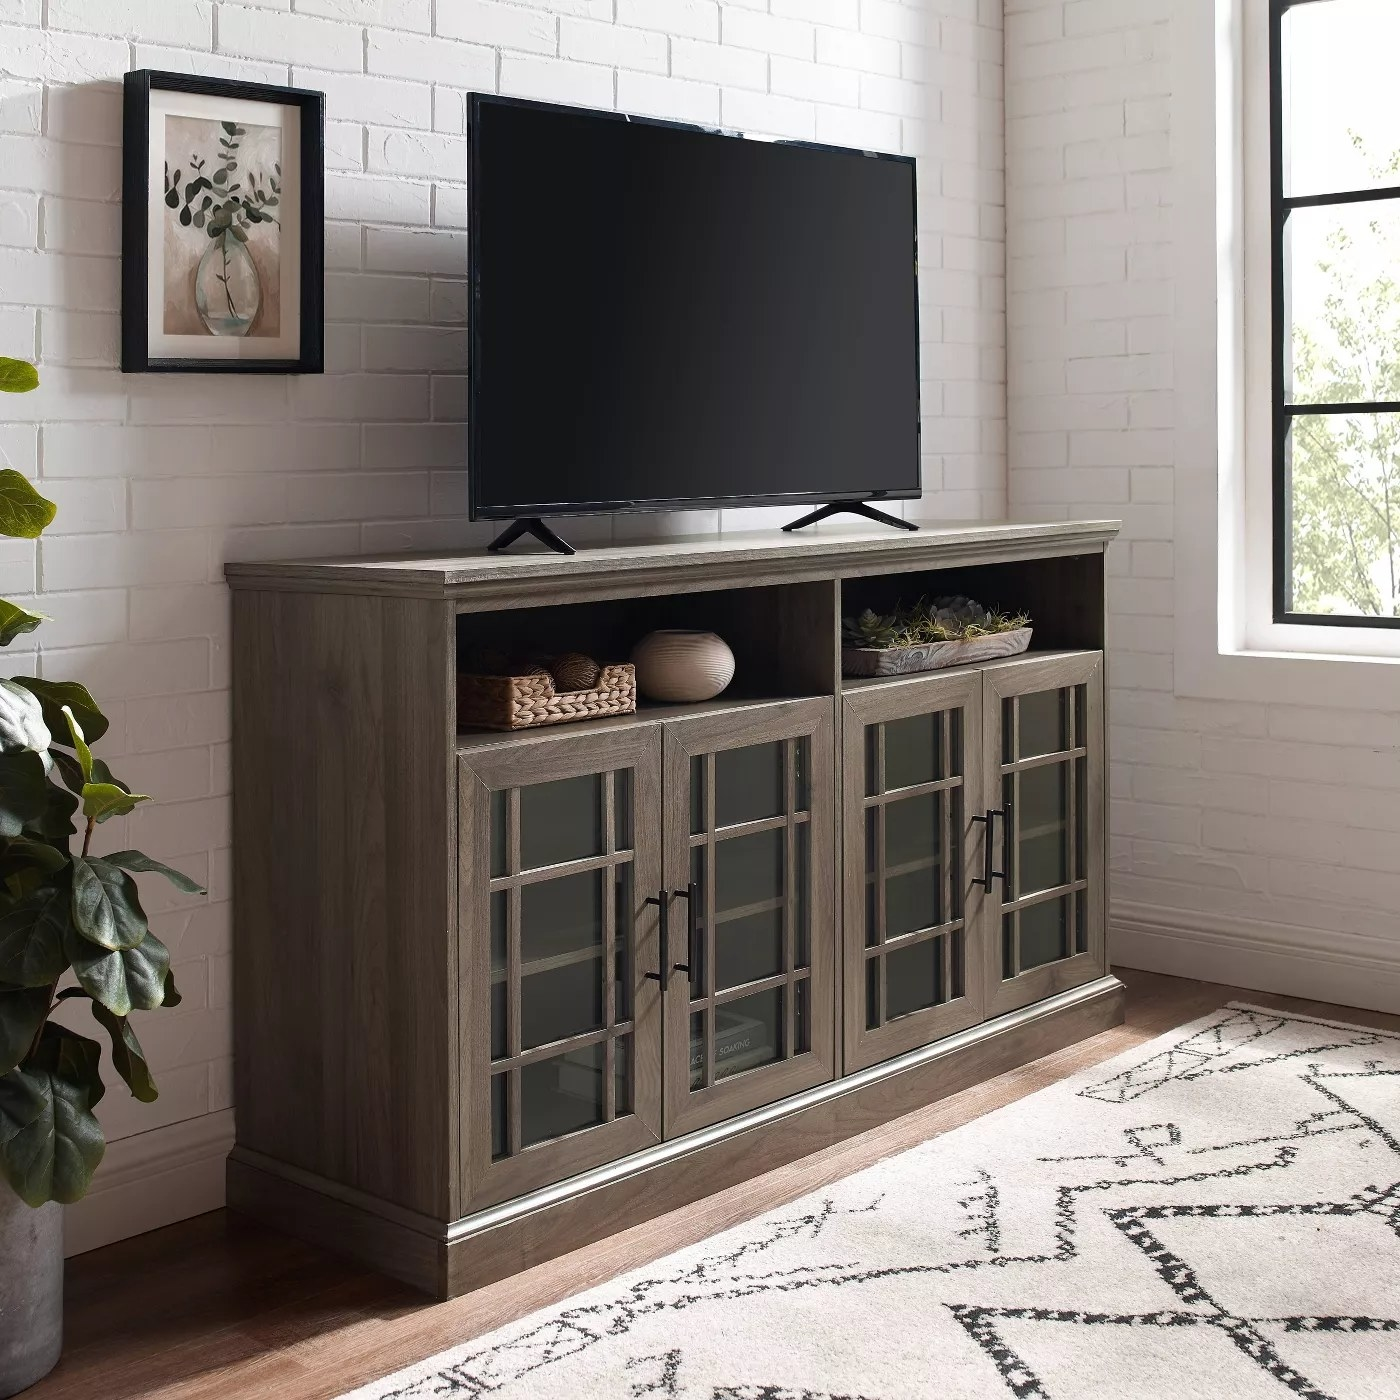 The slate gray and dark walnut transitional TV stand